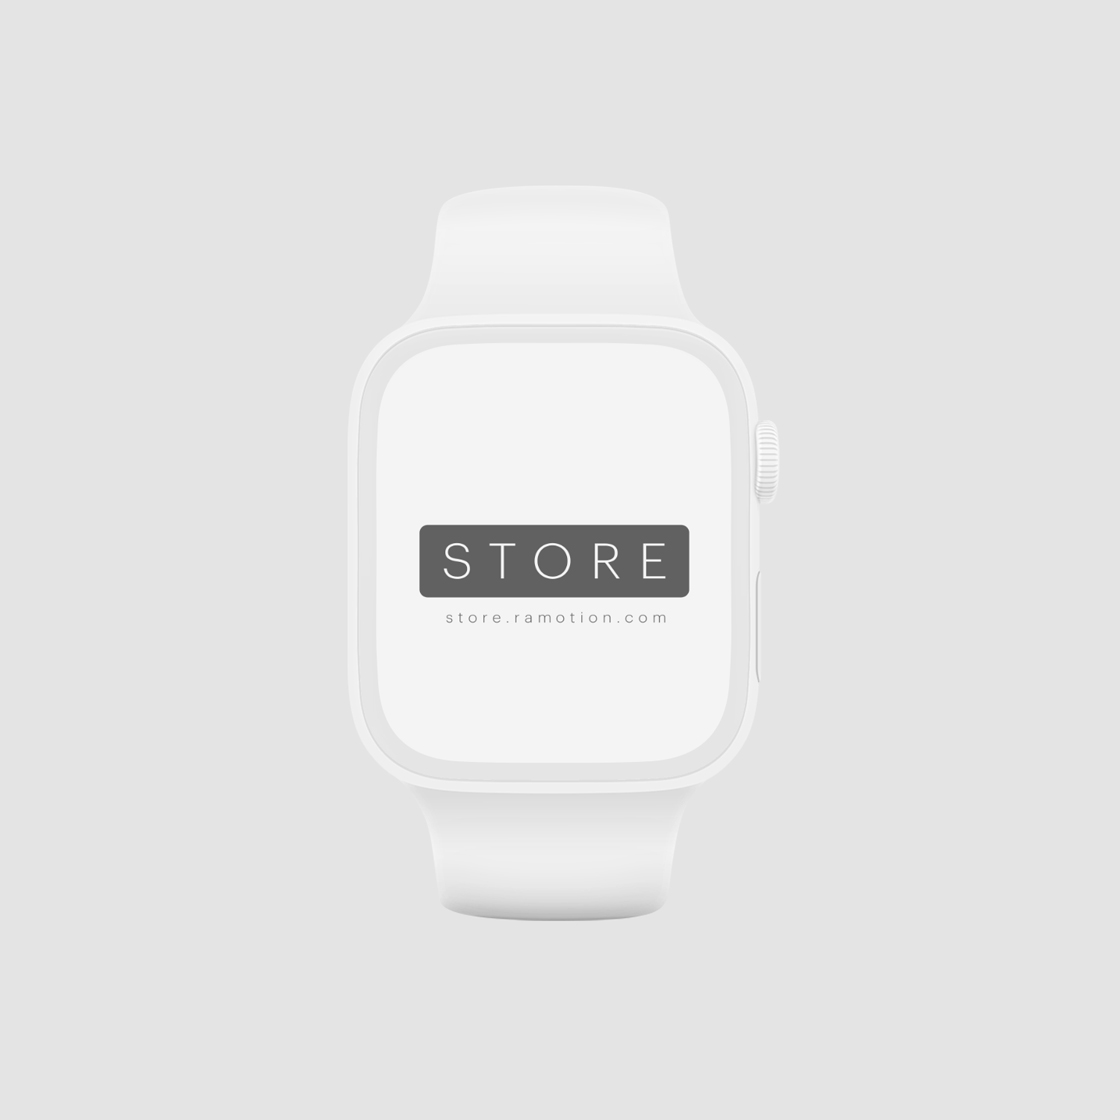 apple watch-4 clay mockup template frontal black psd free